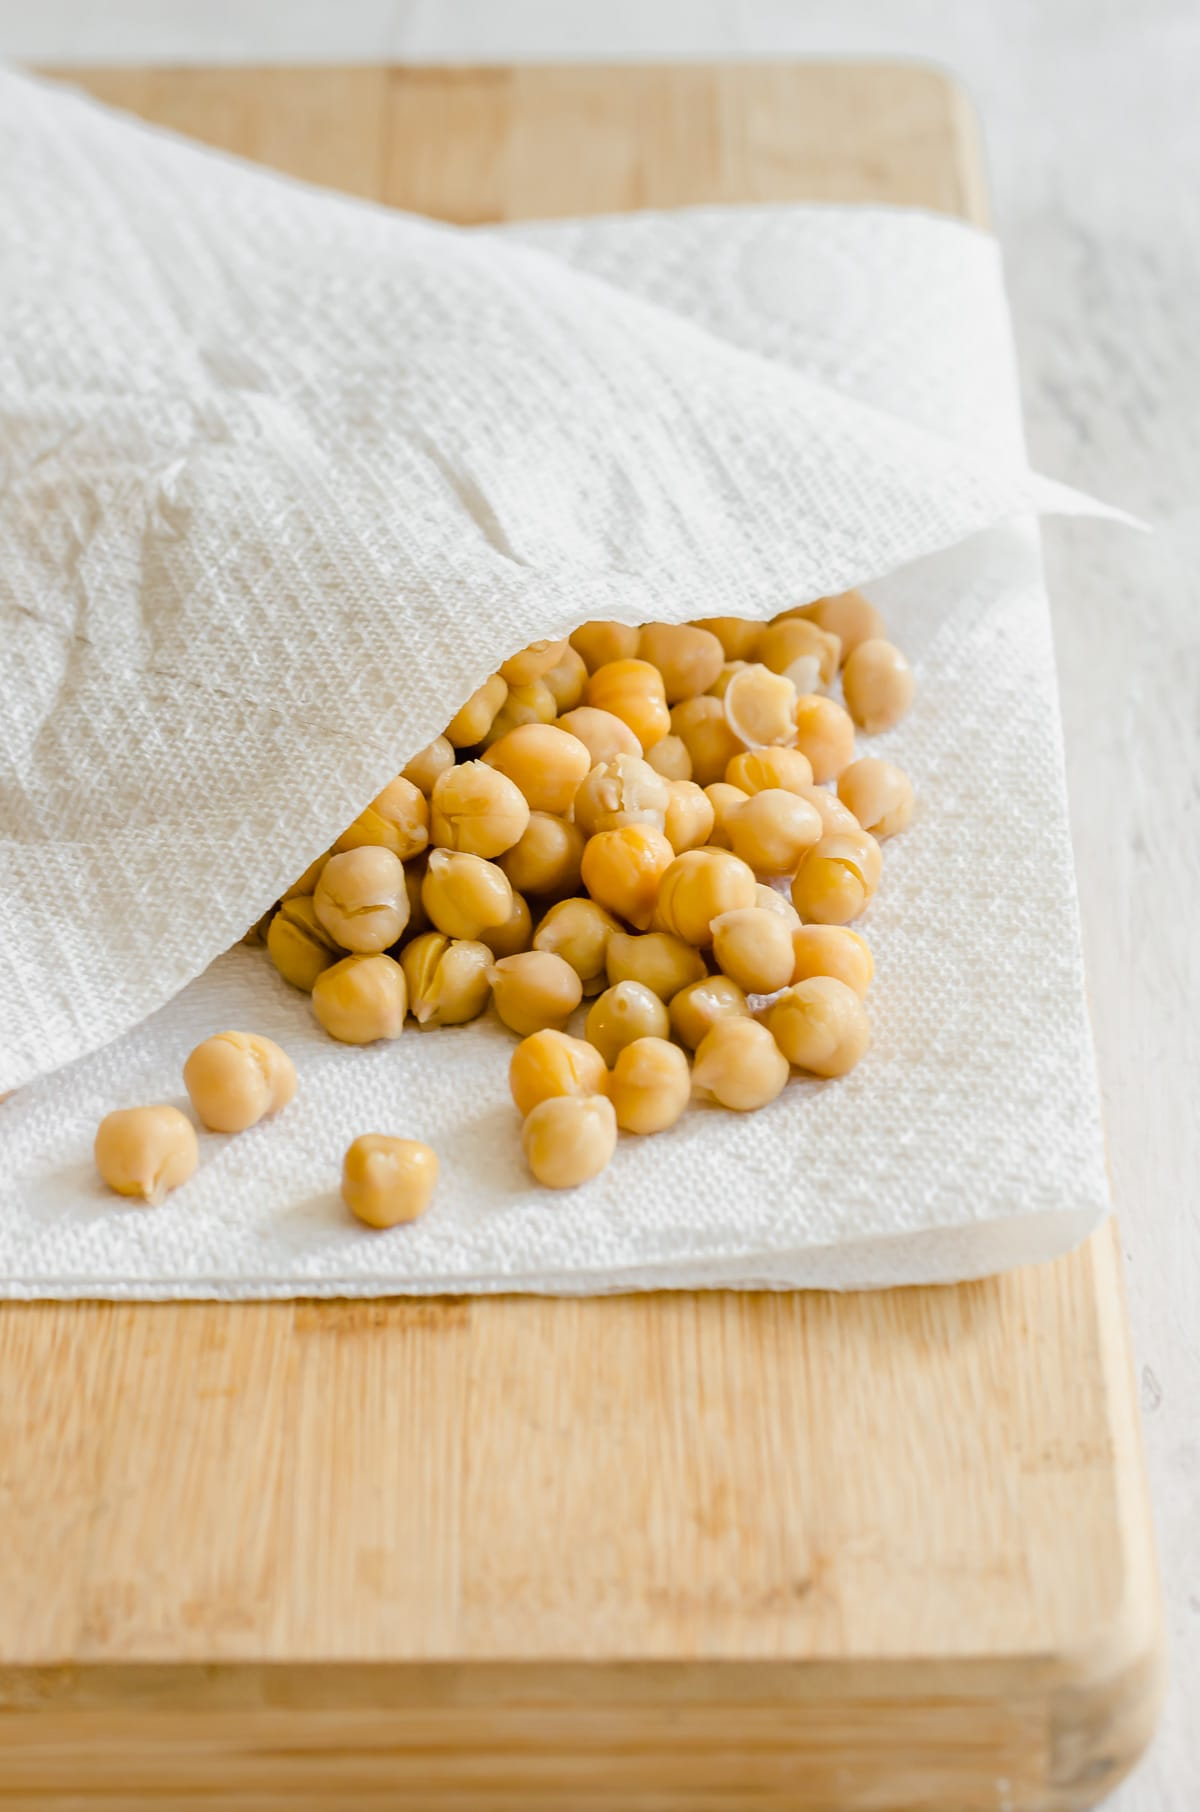 Chickpeas being dried between layers of paper towels on a wood cutting board.